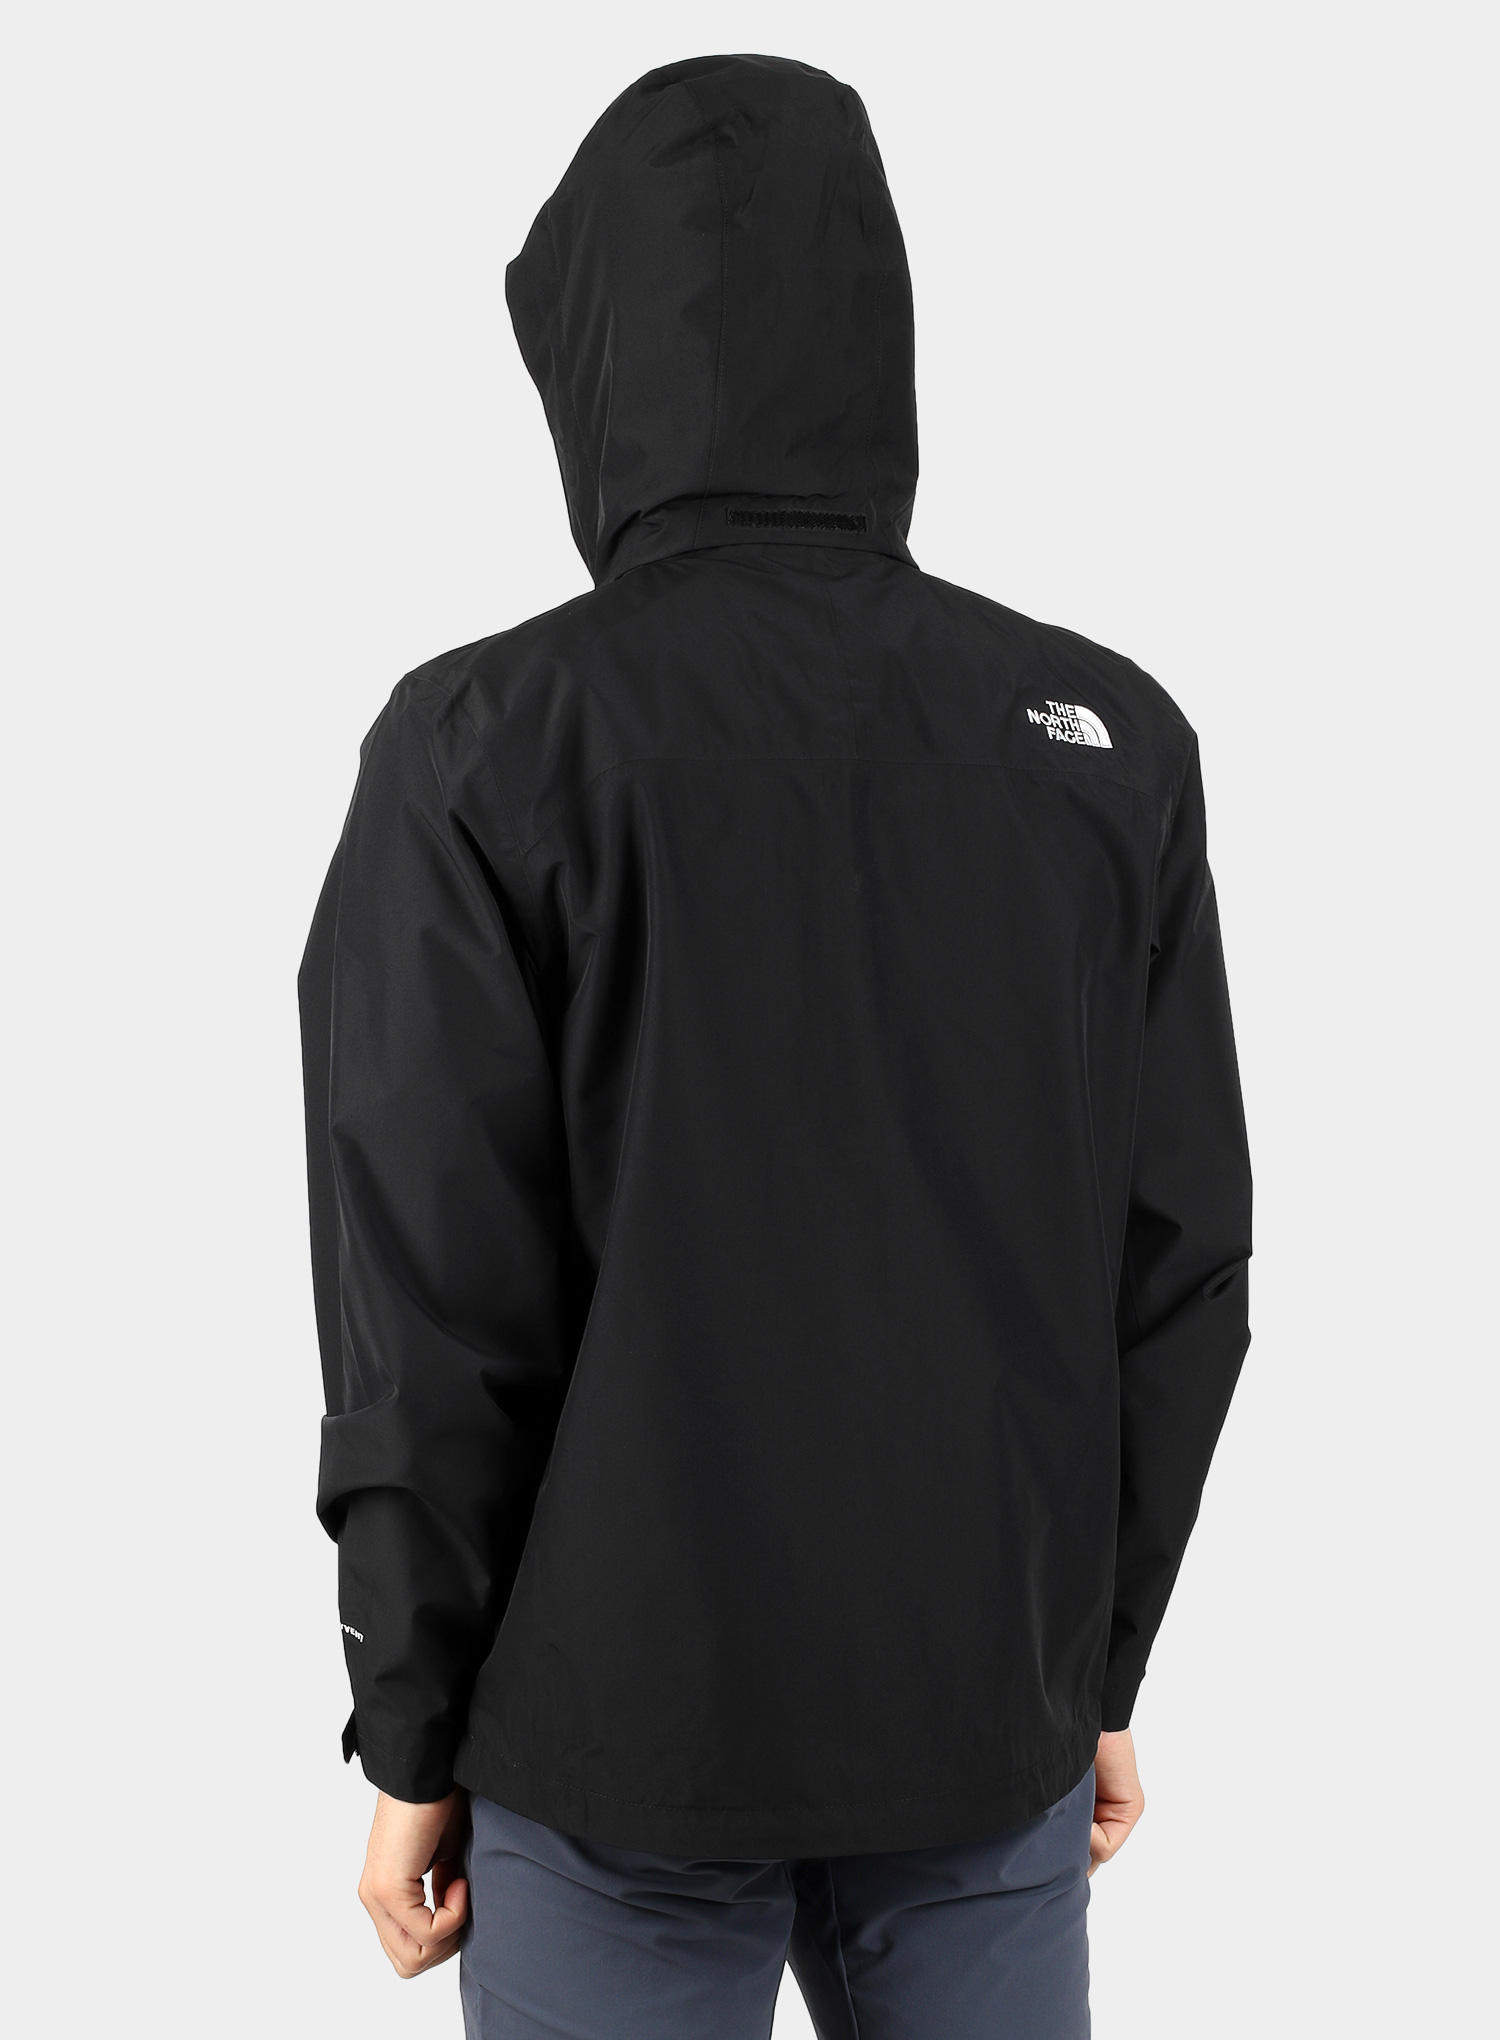 Kurtka The North Face Sangro Jacket - black - zdjęcie nr. 6